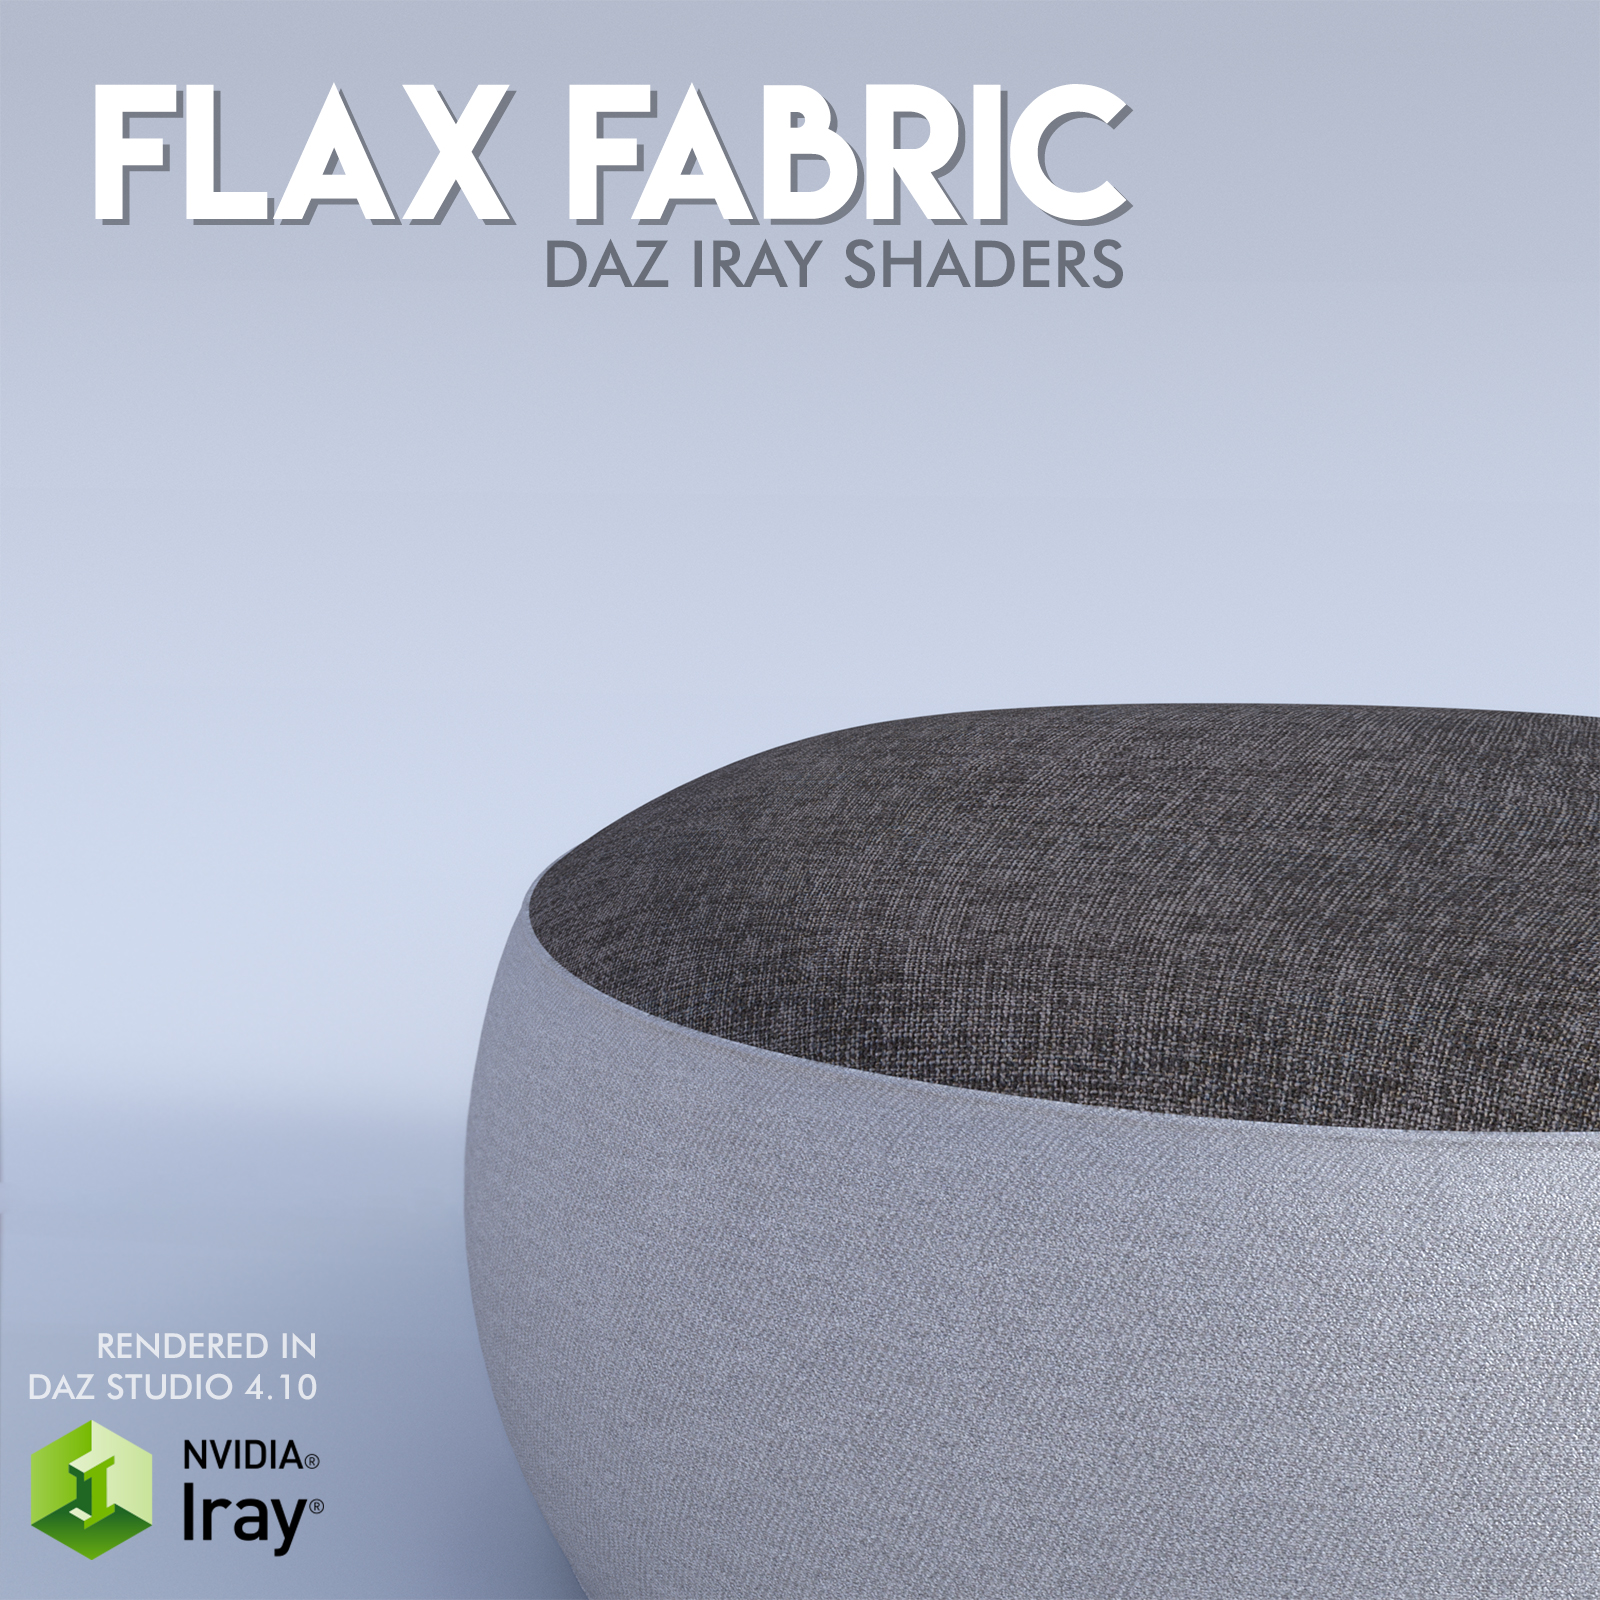 Flax Fabric :: Daz IRAY Shaders